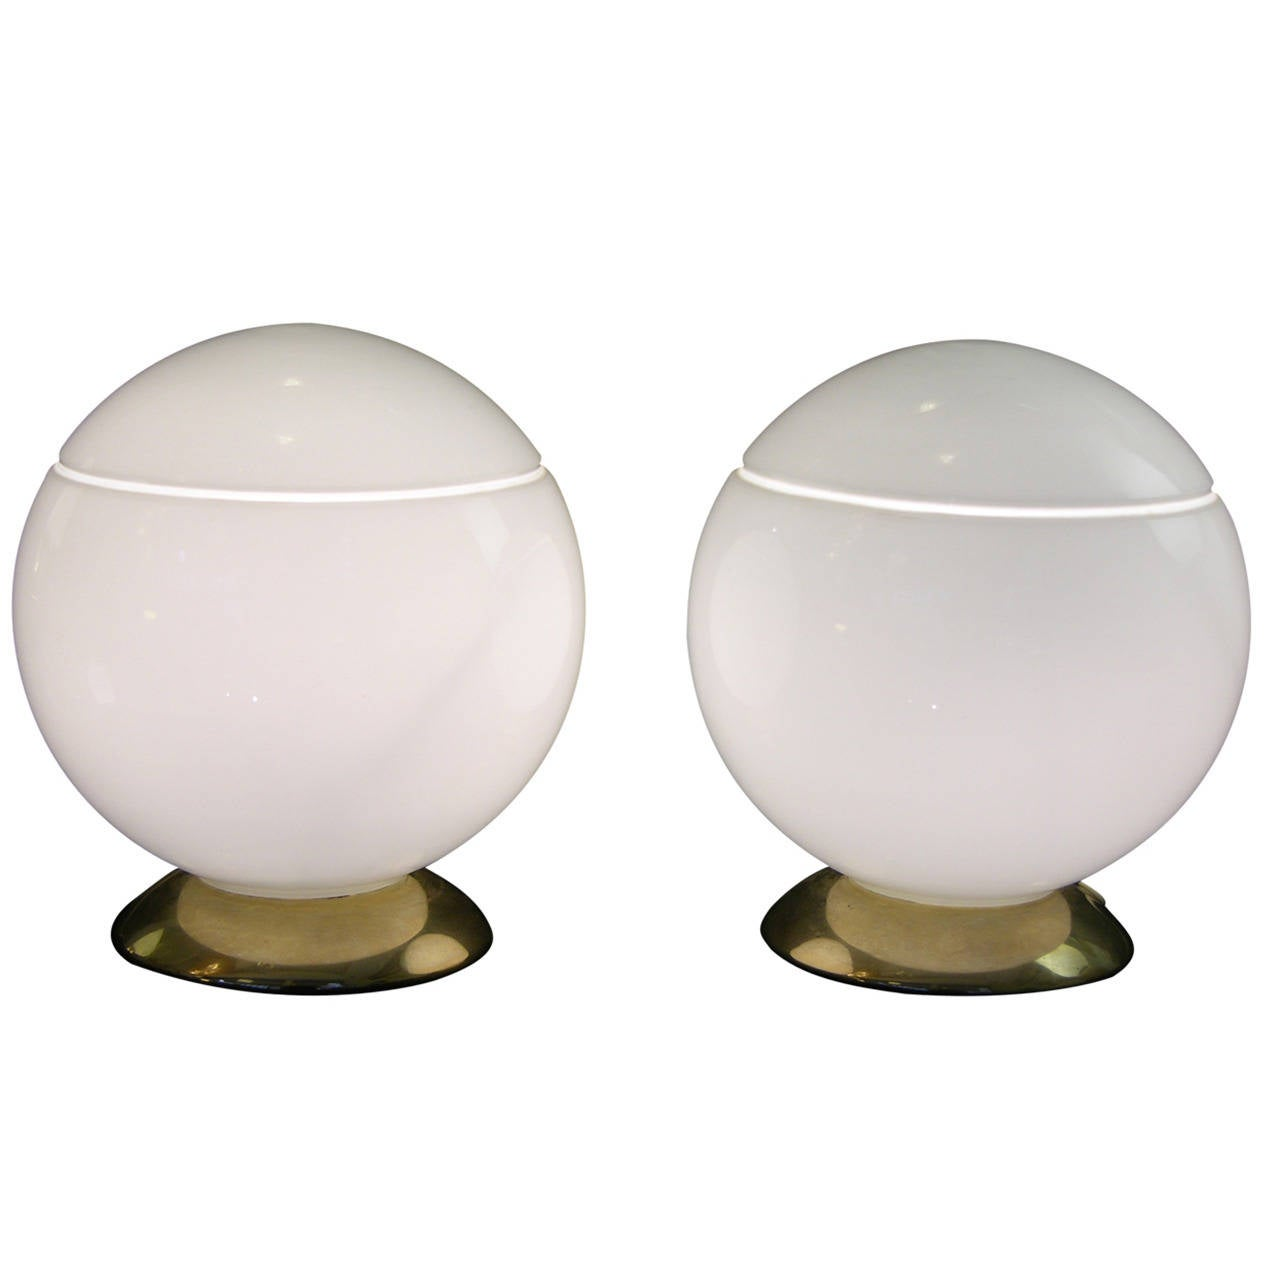 1950s Italian Pair Of Round Silk White Murano Glass Lamps By Res At 1stdibs